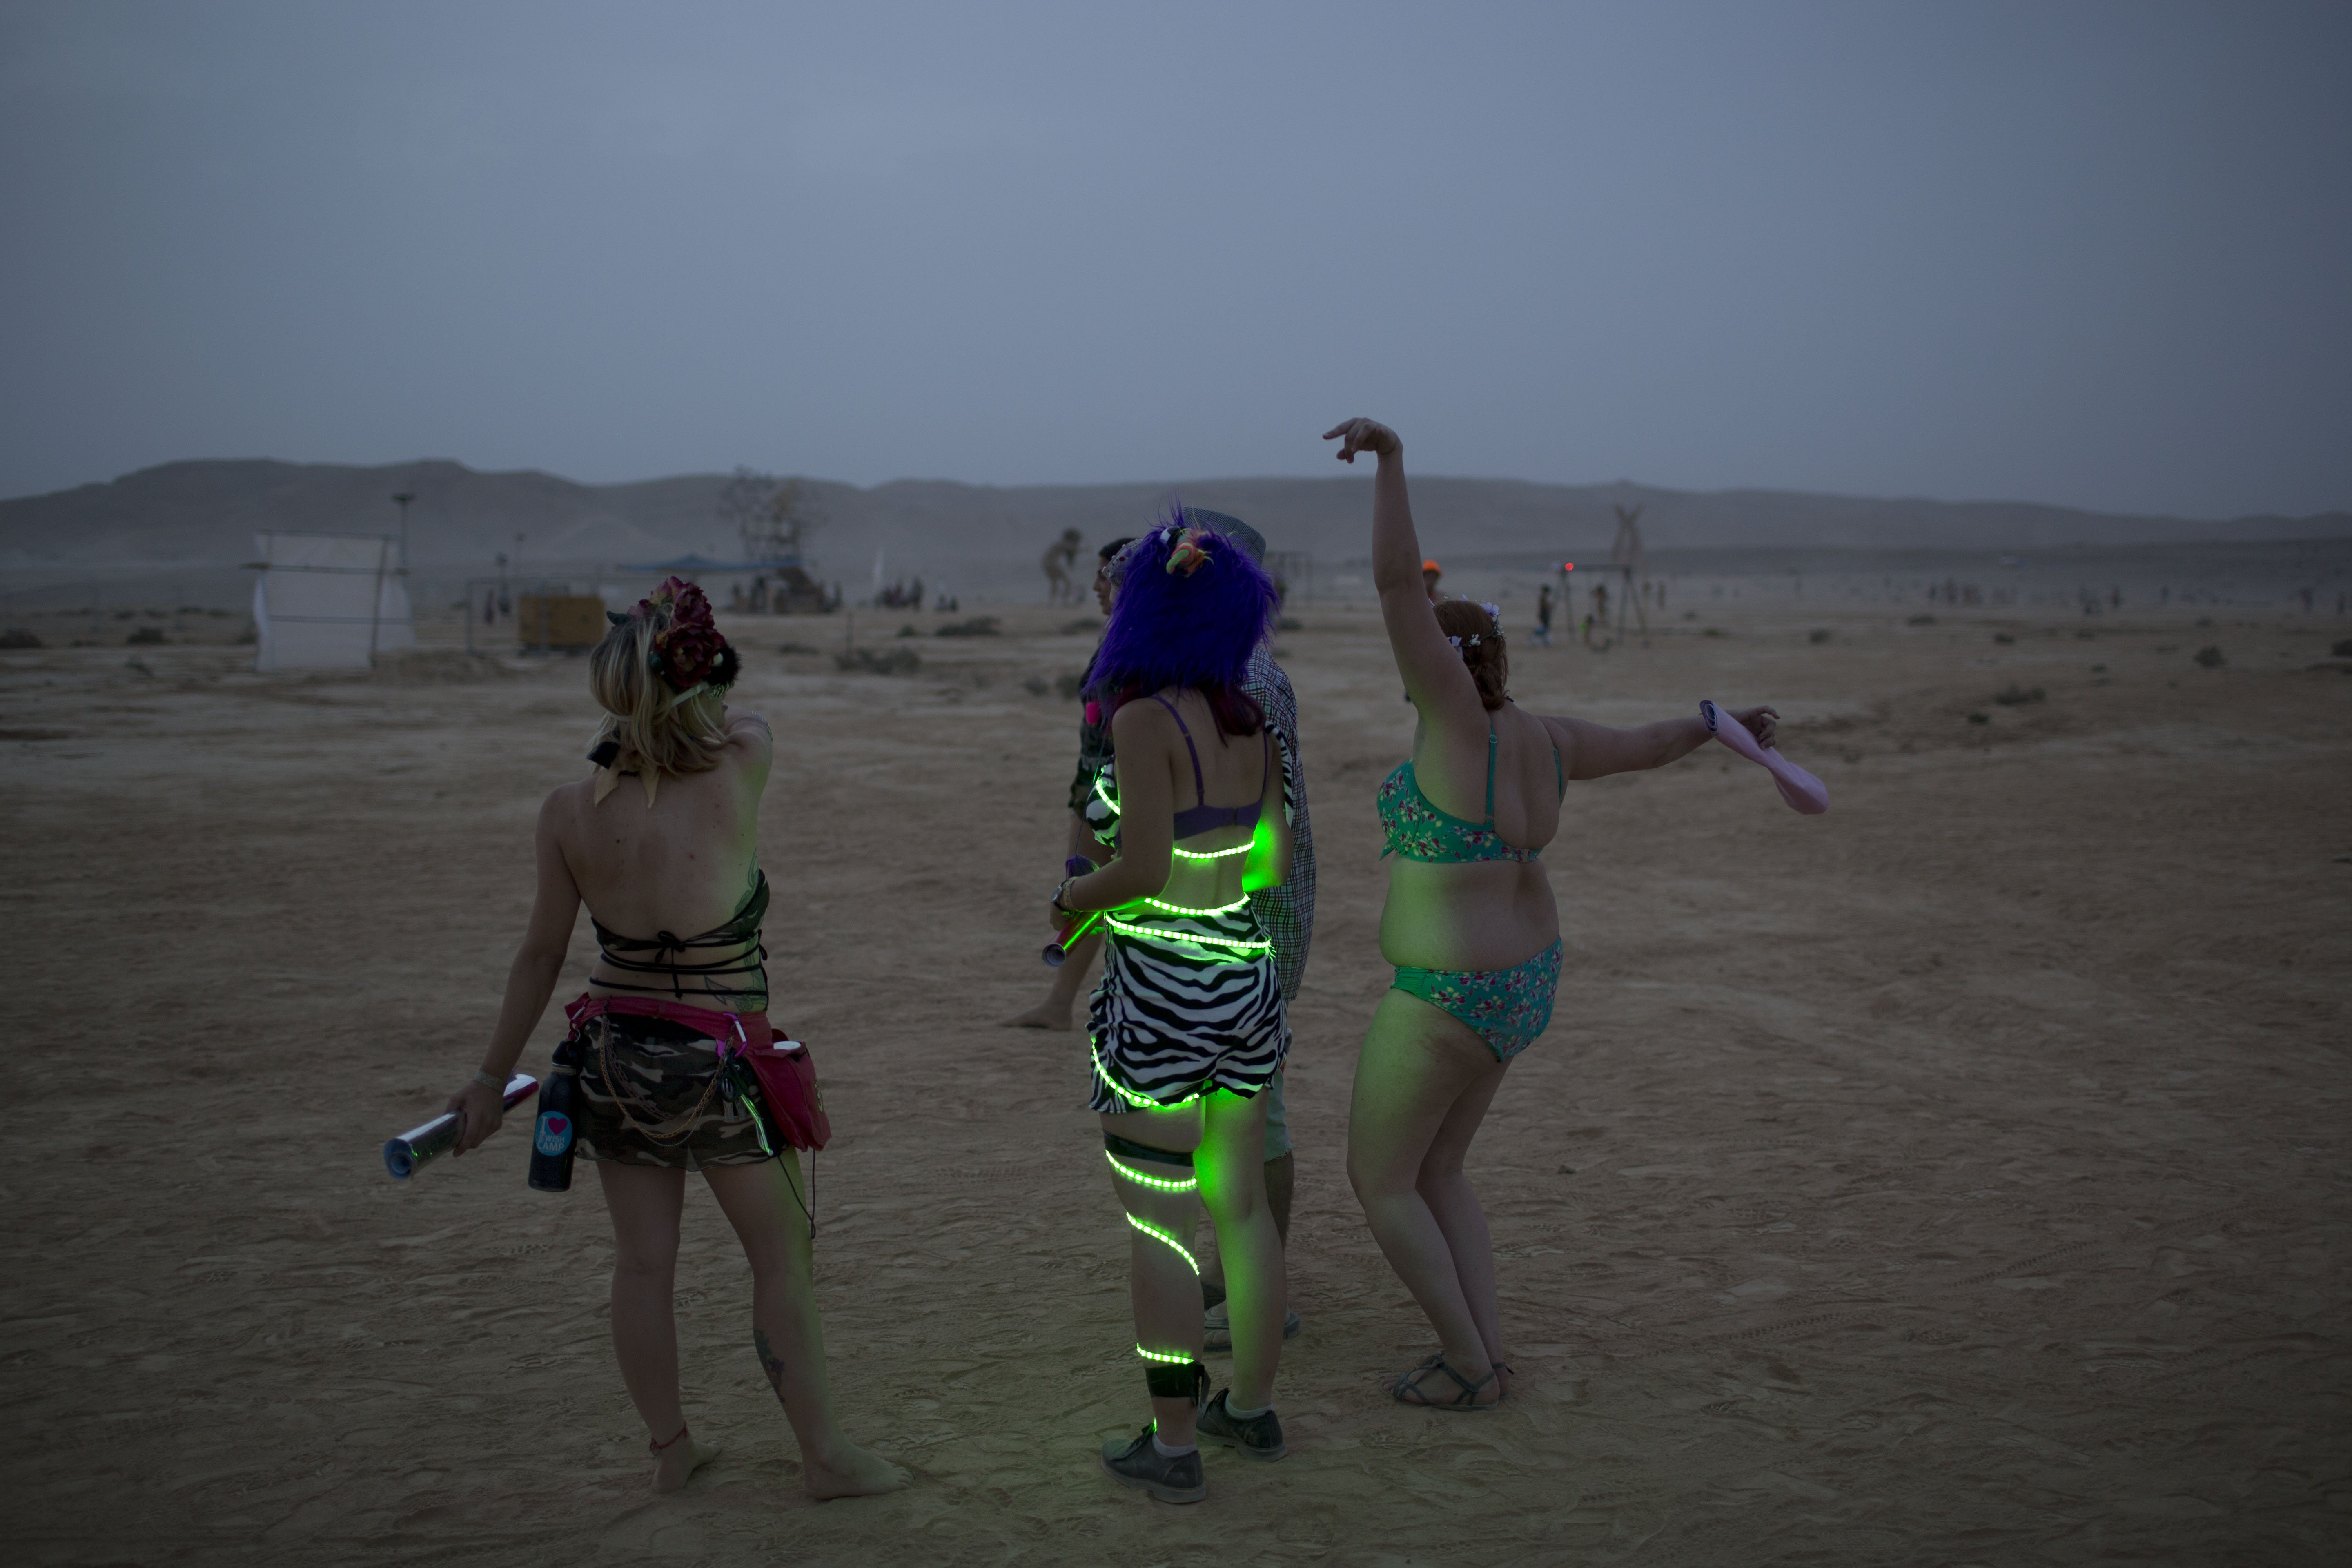 Israelis dance at a party in the Negev Desert, Israel on June 4, 2014.